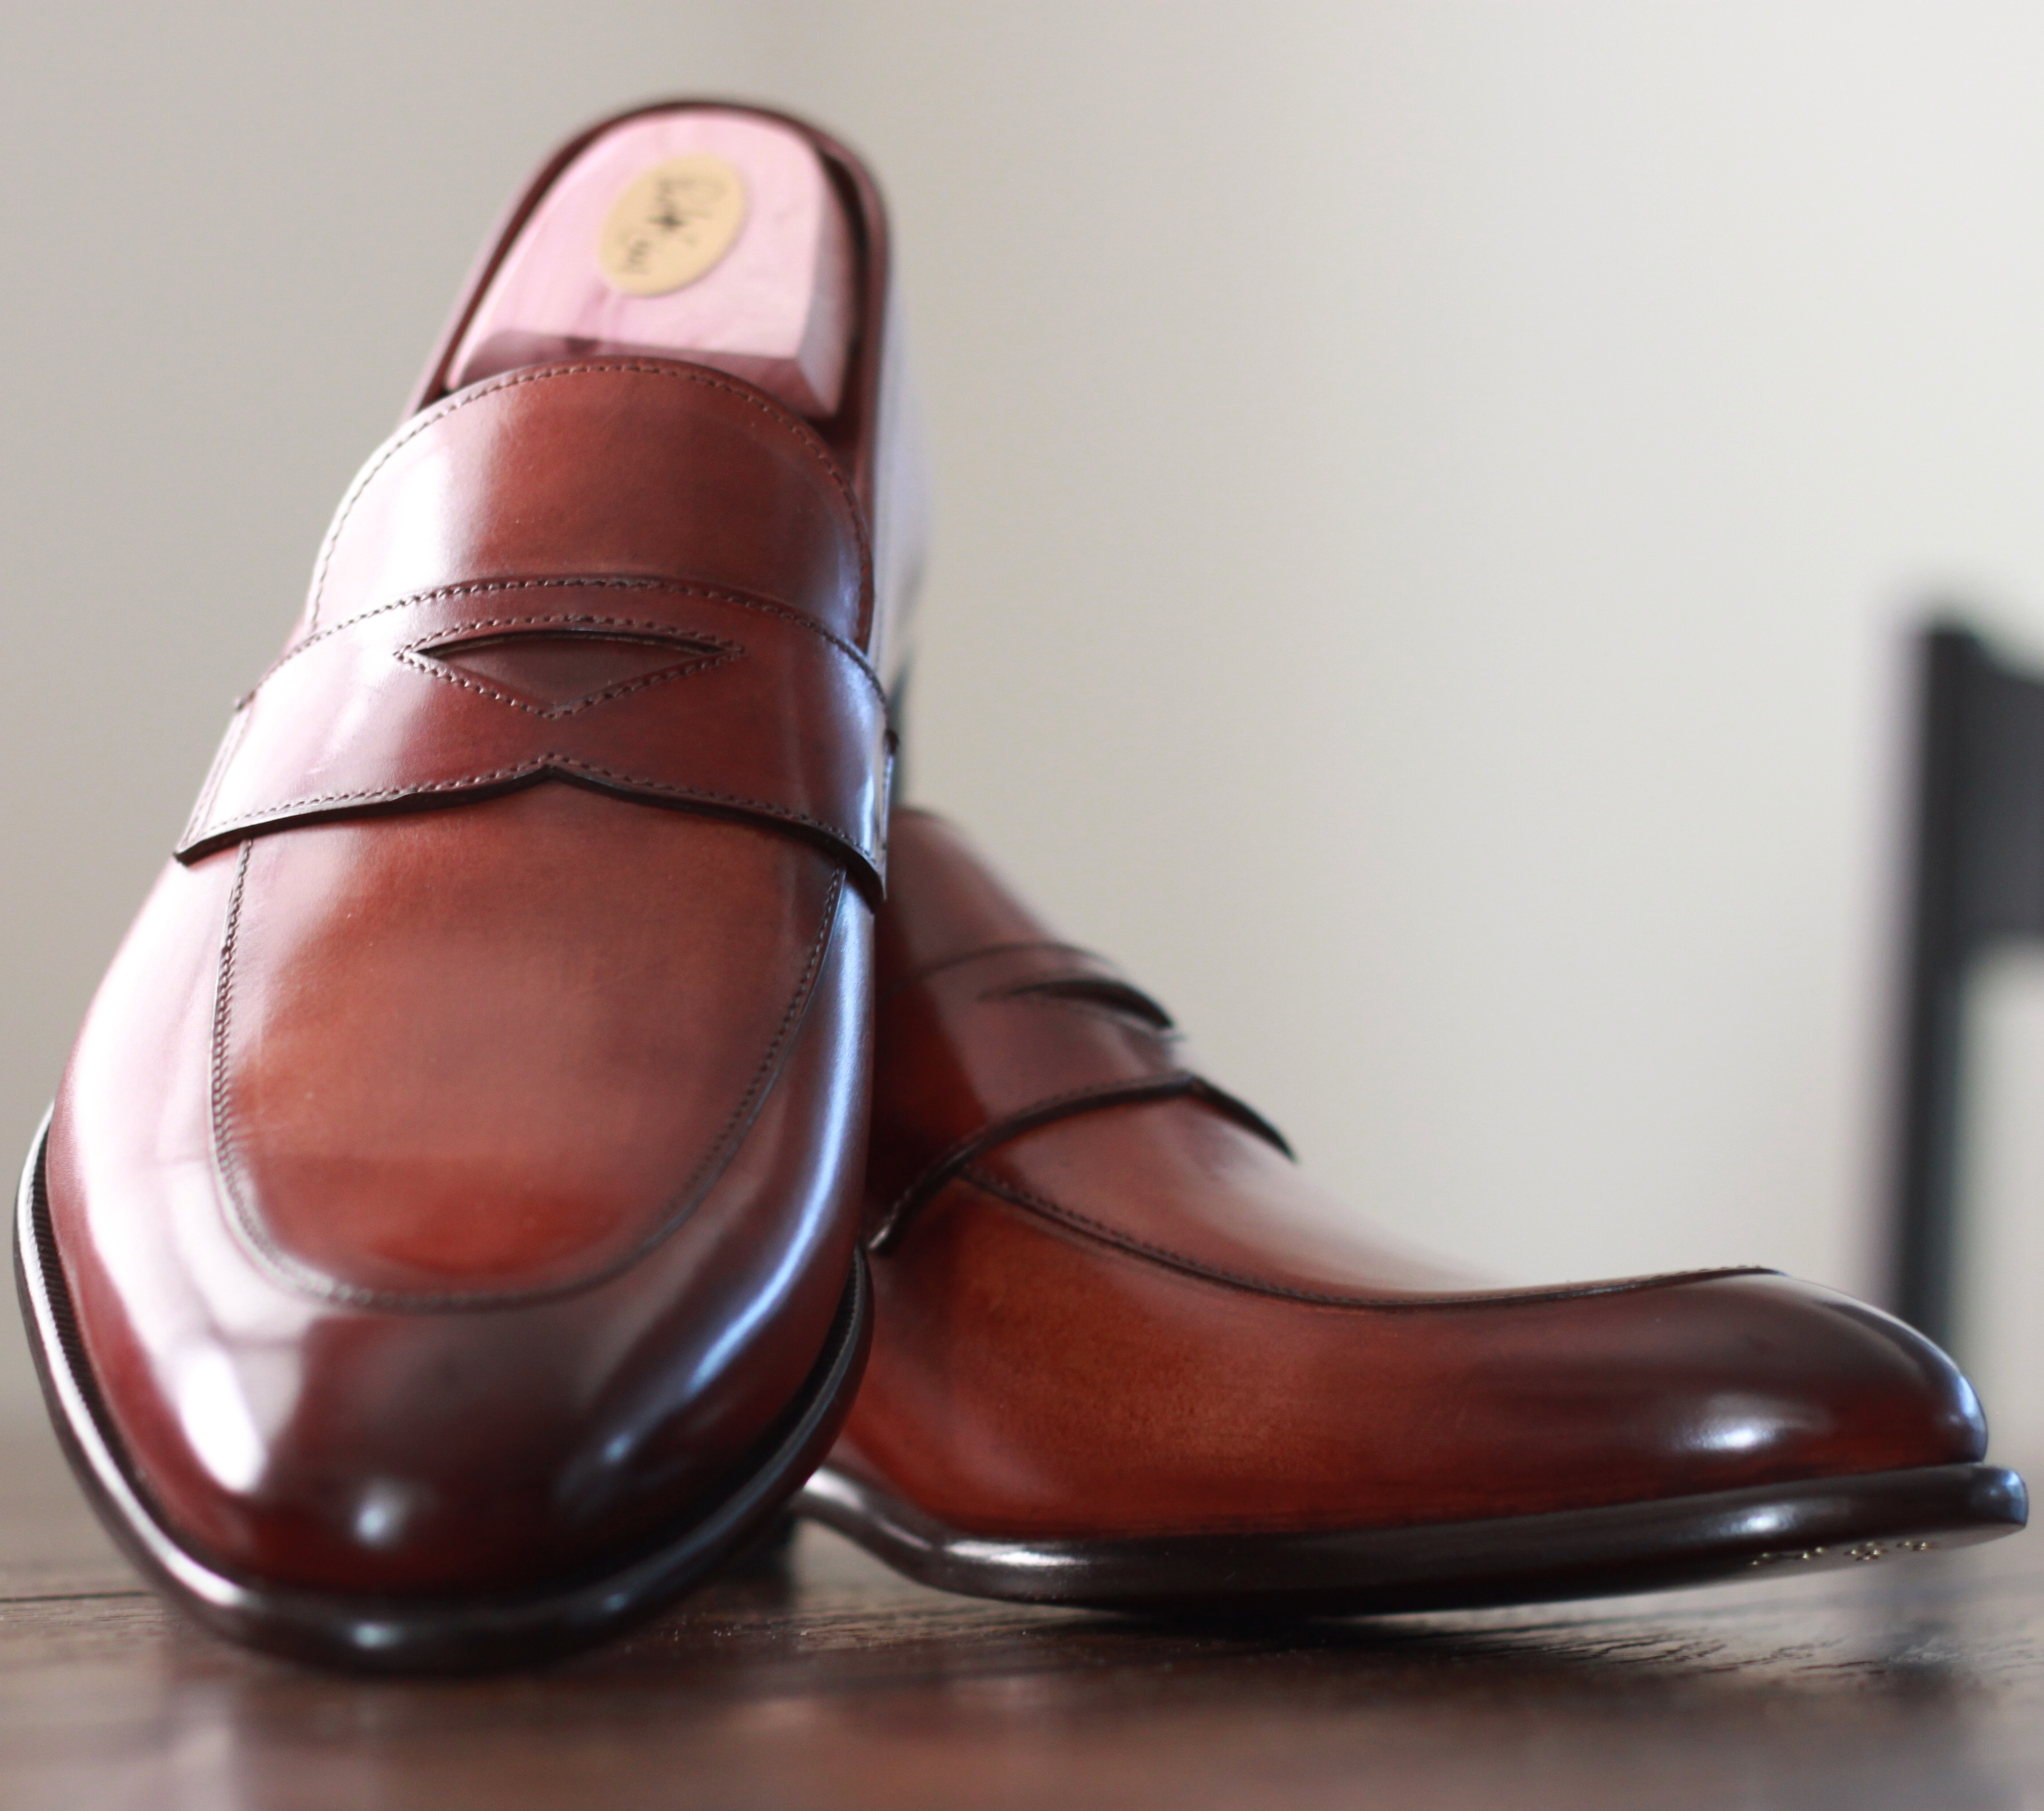 paul evans ny, loafers, penny loafers, havana brown, product review